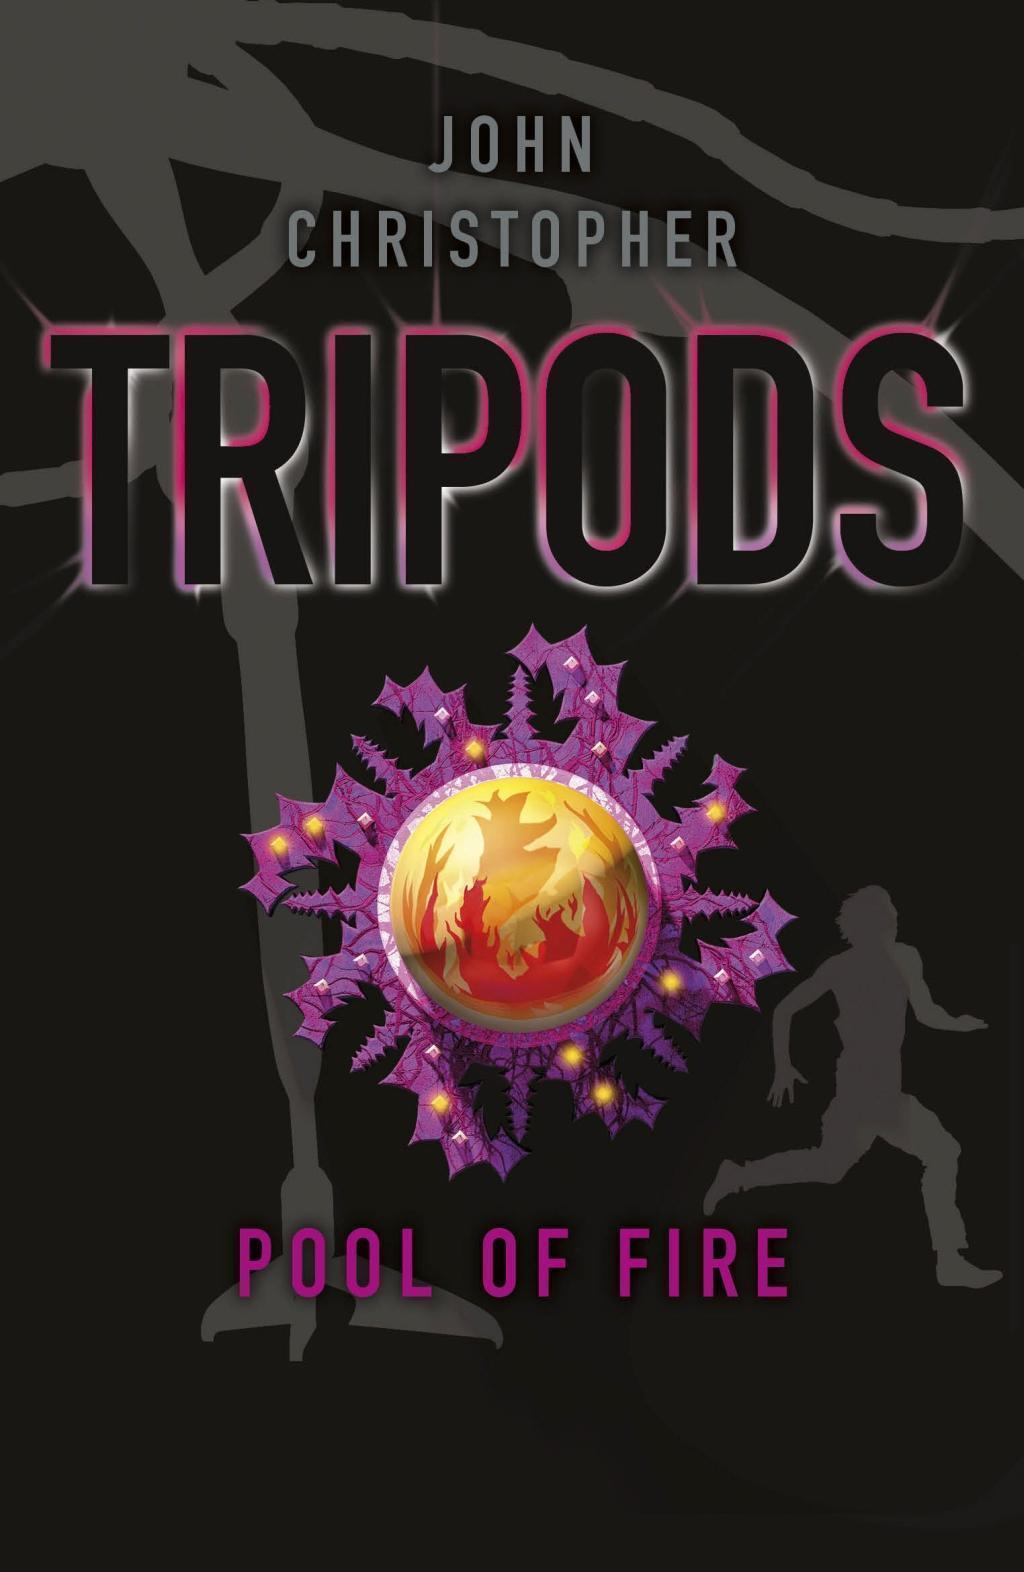 Tripods: The Pool of Fire